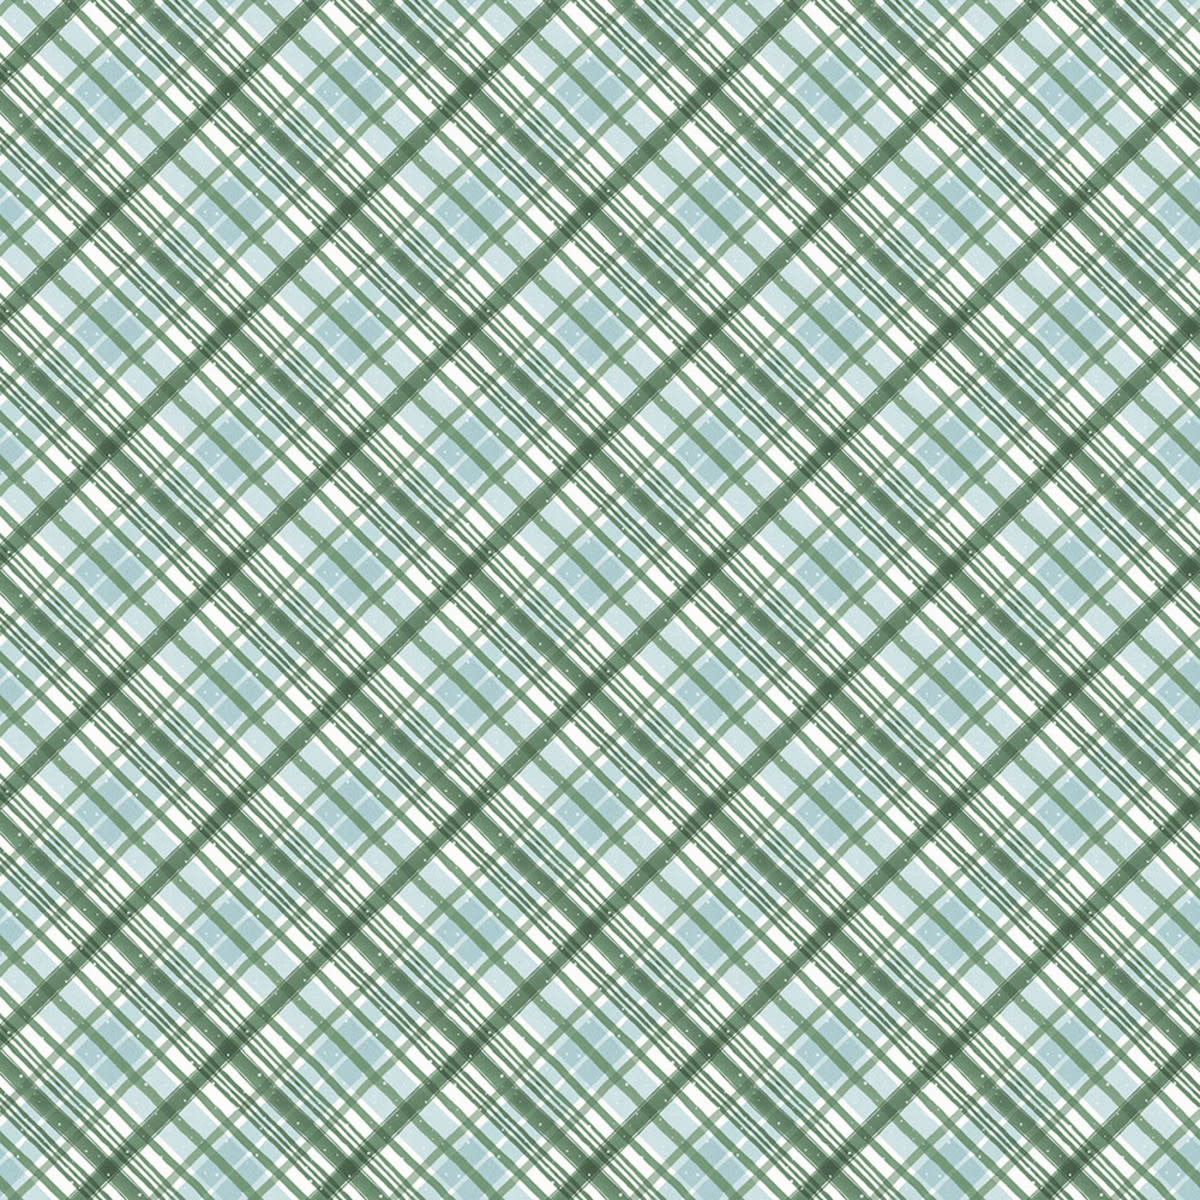 LISA AUDIT A MAGICAL CHRISTMAS, PLAID, GREEN (86467-174) $0.20 /CM OR $20/M